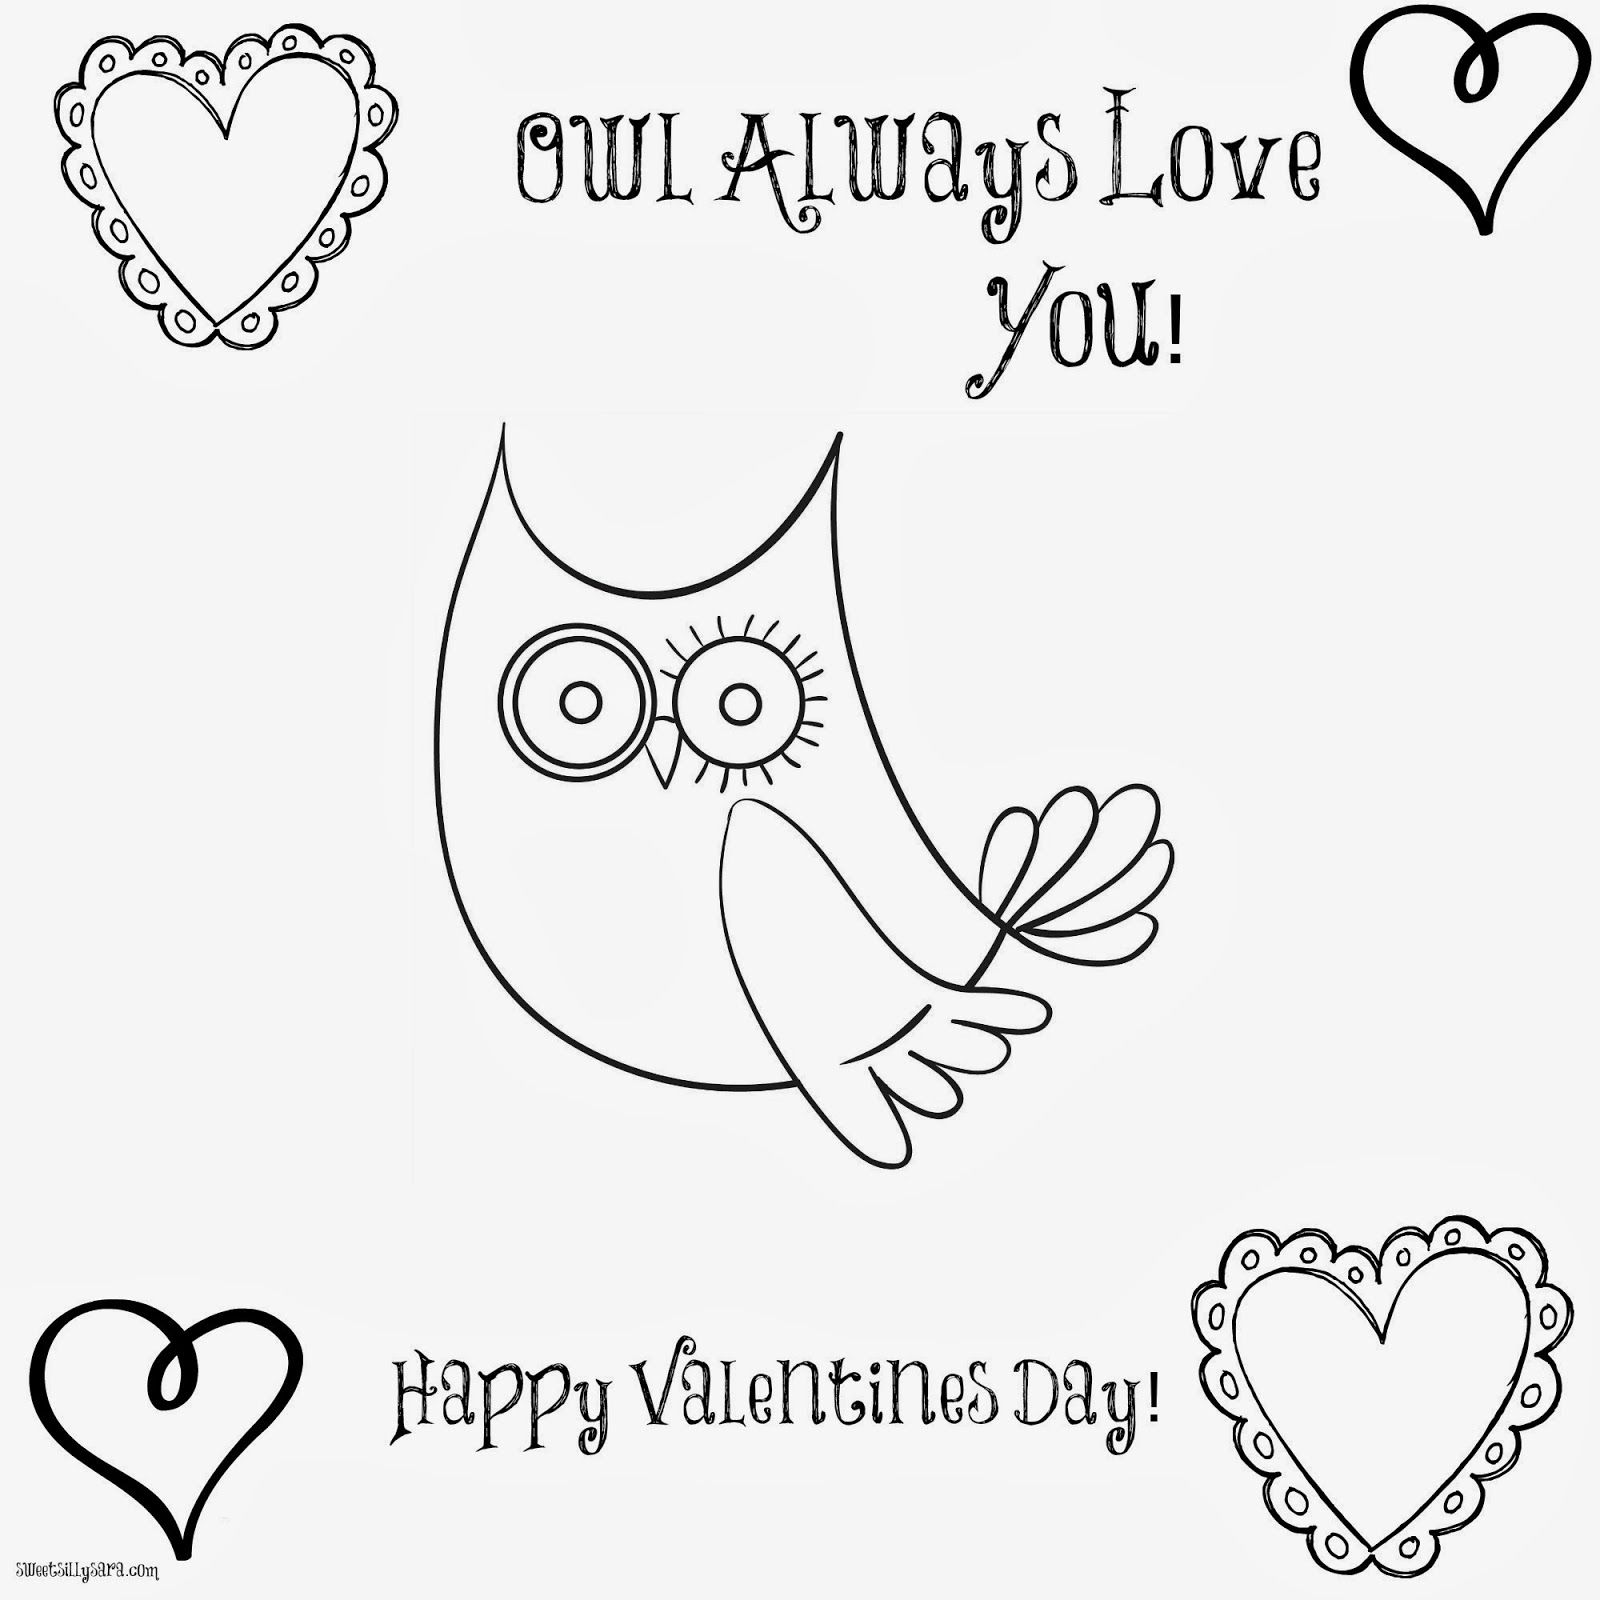 Owl Valentine Coloring Page Pinned By Www Myowlbarn Com